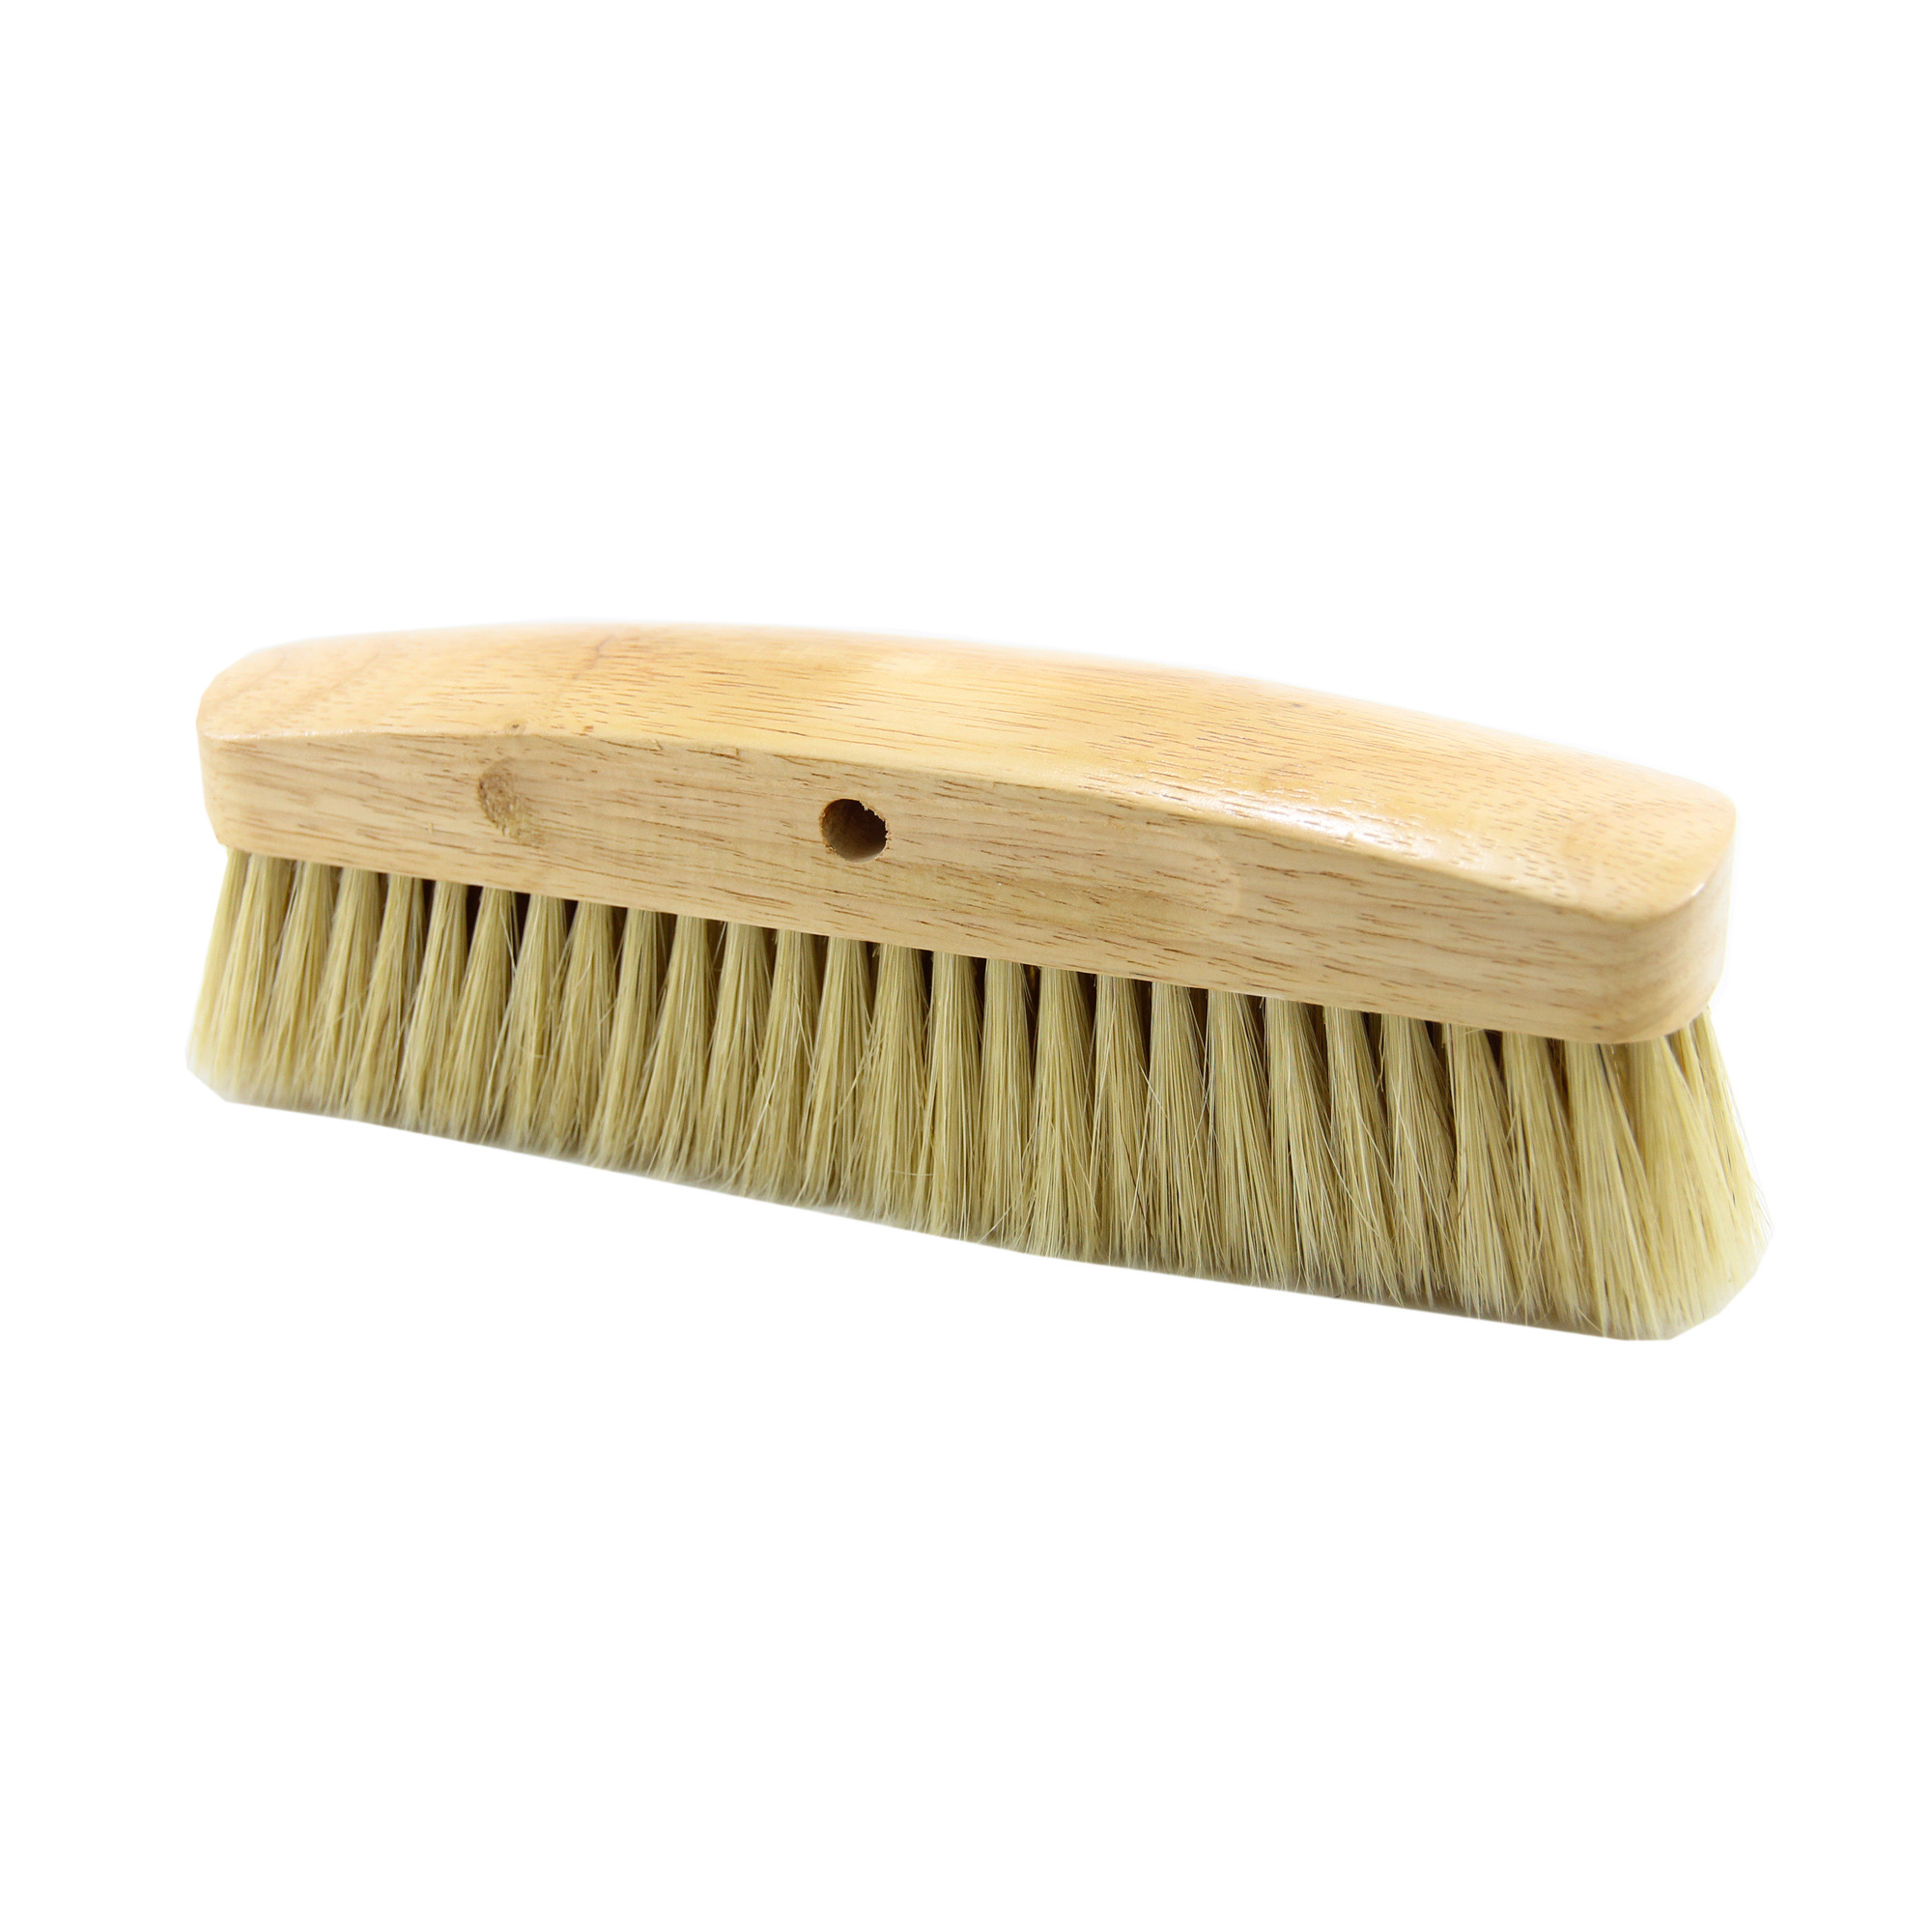 MATFER FLOUR BRUSH (Imported from France)